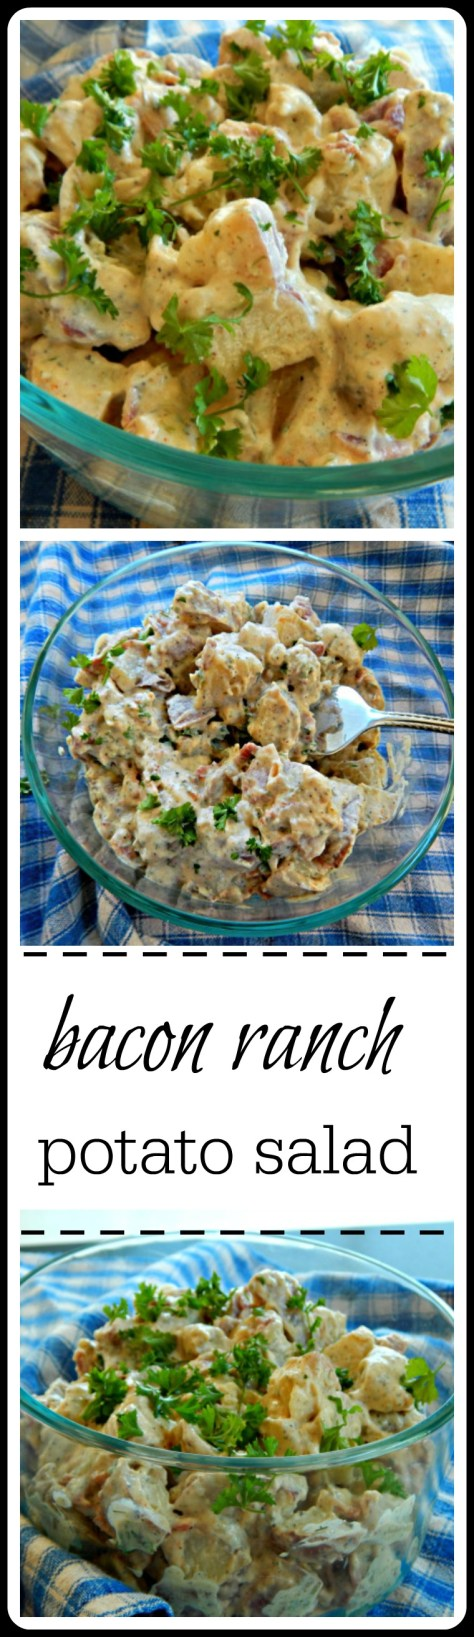 Bacon Ranch Potato Salad - the flavor comes from dry Ranch mix, either home-made or store bought and it's fantastic!